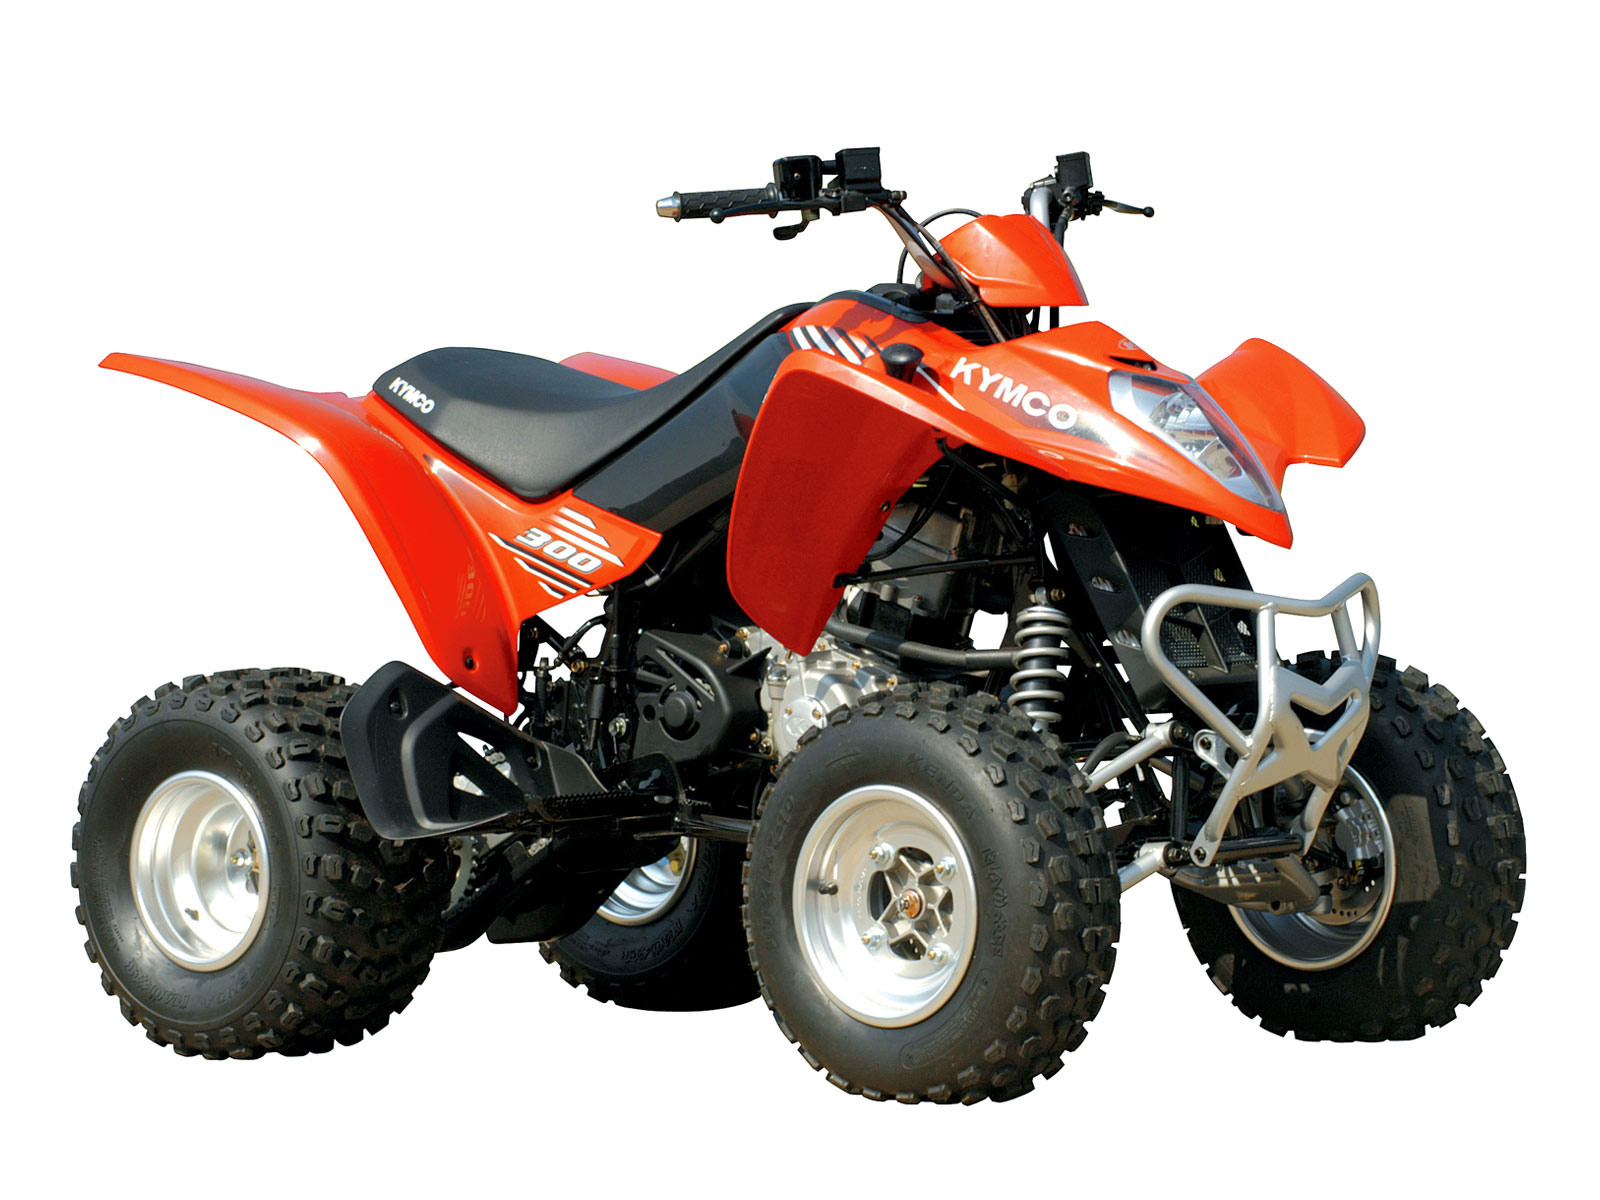 2008 kymco atv pictures mongoose 300 specs accident lawyer. Black Bedroom Furniture Sets. Home Design Ideas